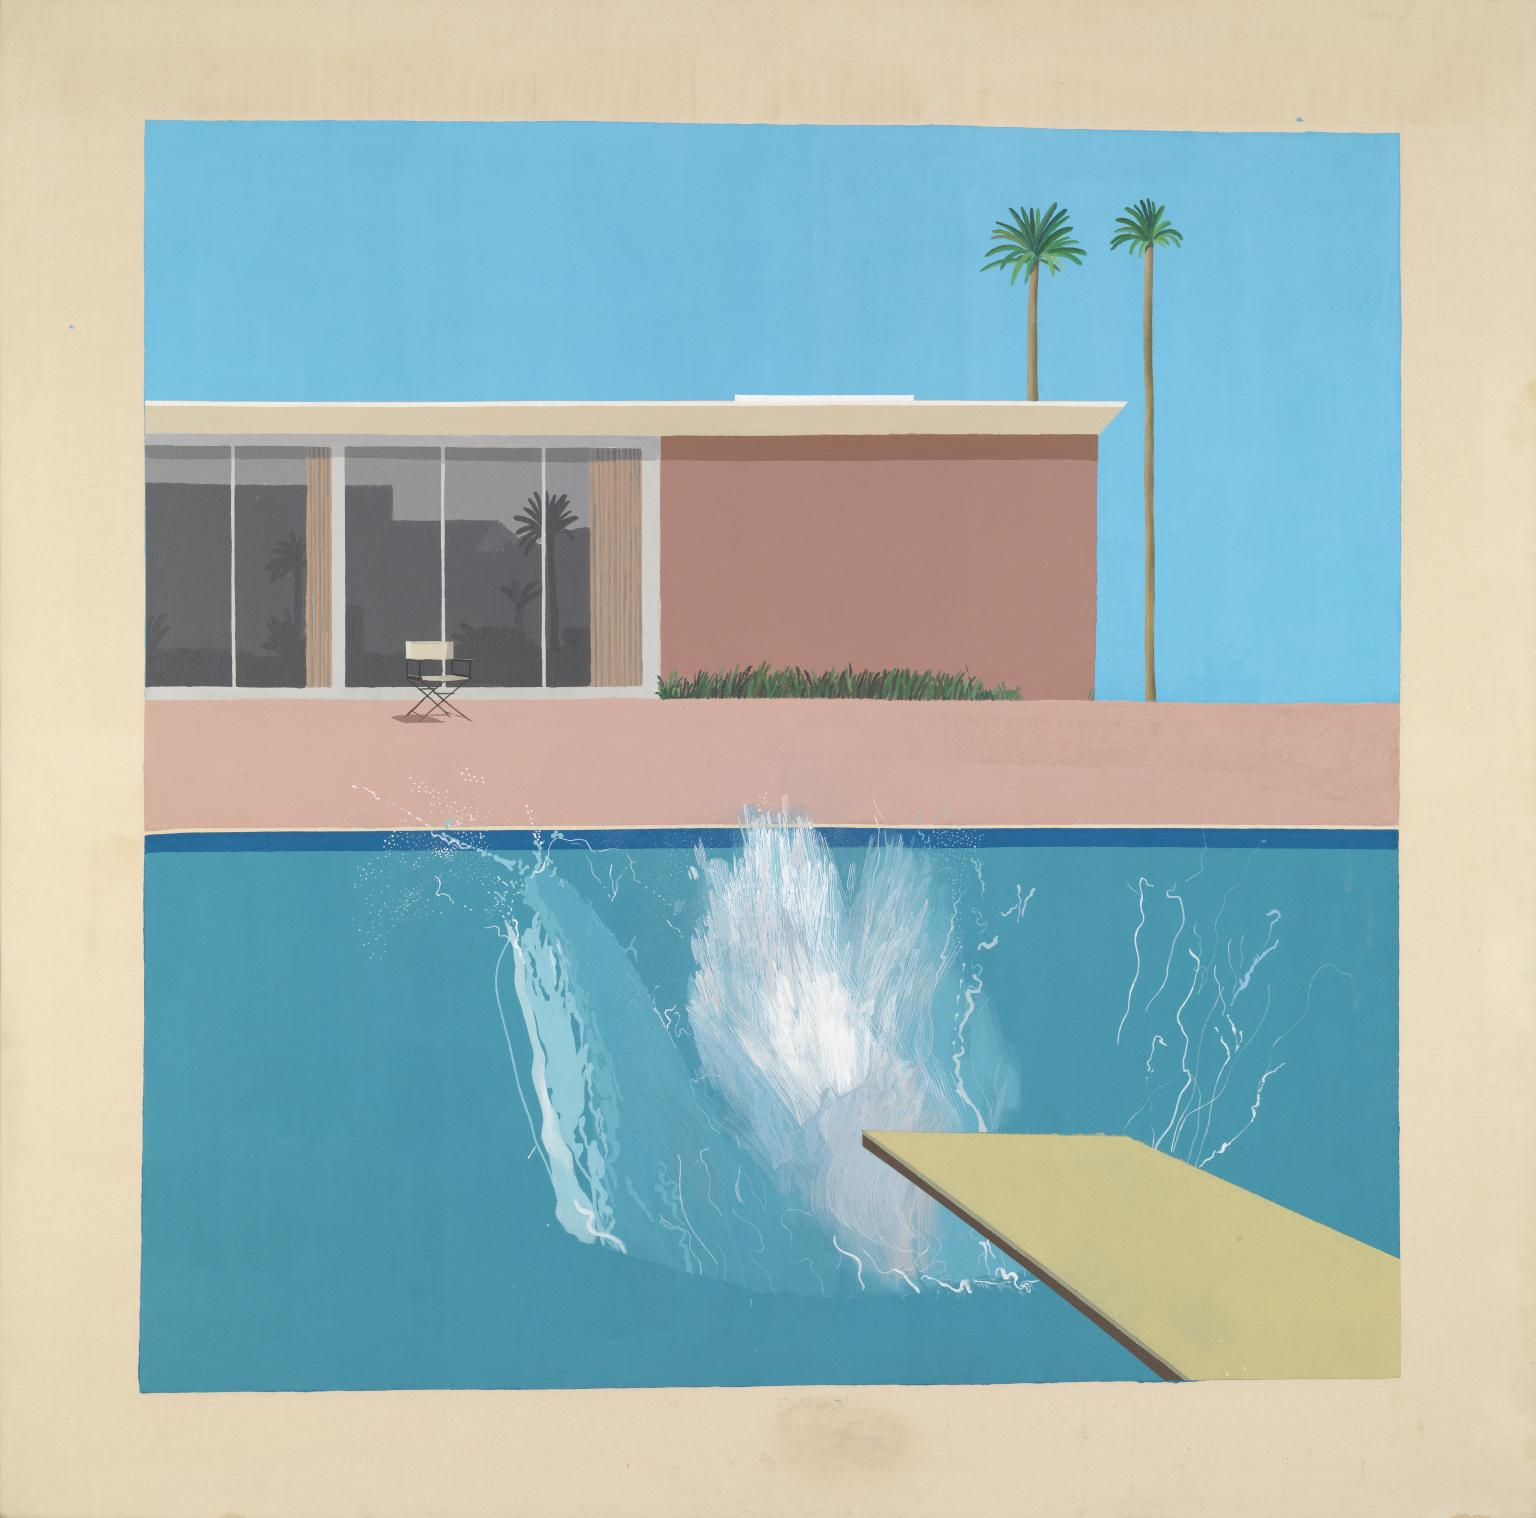 A Bigger Splash,  David Hockney 1967